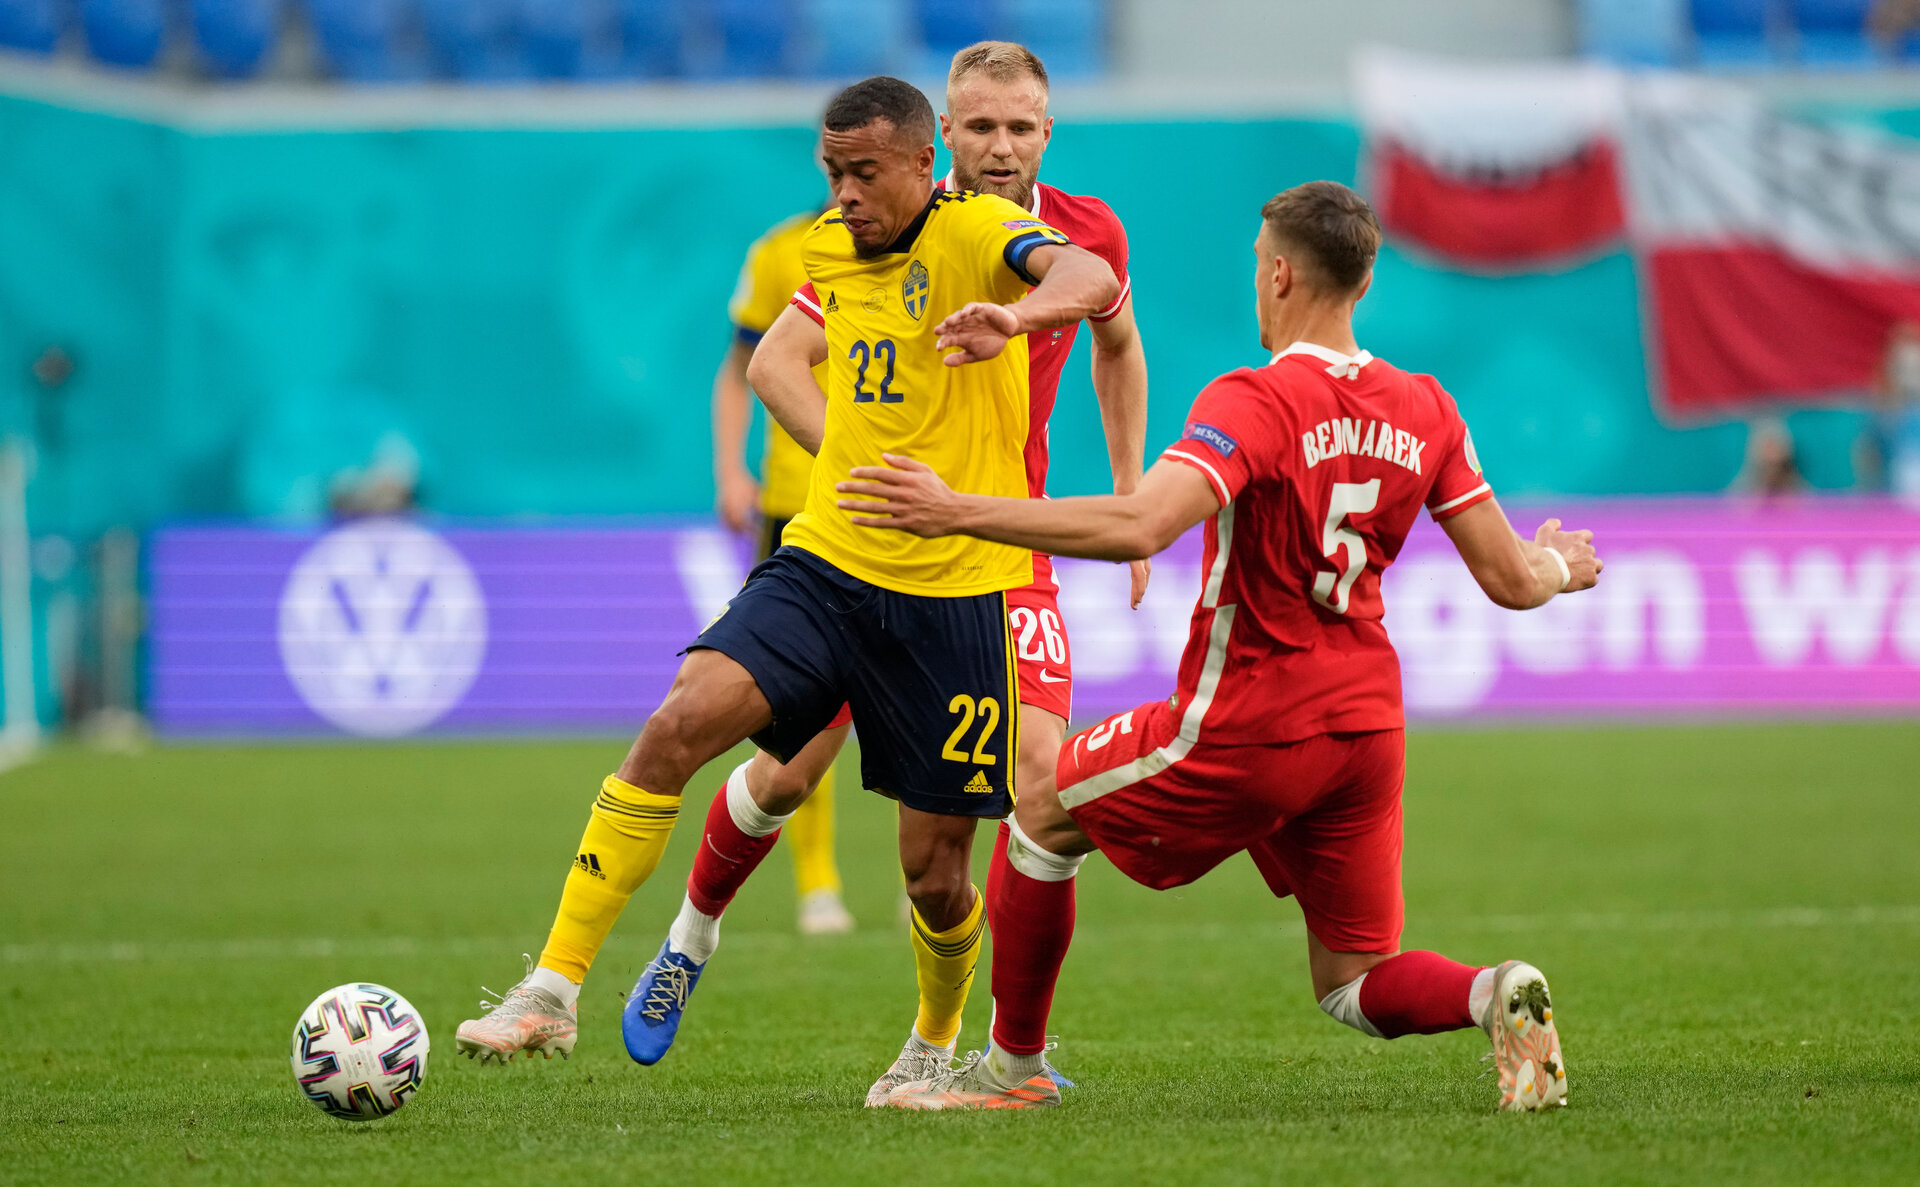 SAINT PETERSBURG, RUSSIA - JUNE 23: Robin Quaison of Sweden is challenged by Jan Bednarek of Poland during the UEFA Euro 2020 Championship Group E match between Sweden and Poland at Saint Petersburg Stadium on June 23, 2021 in Saint Petersburg, Russia. (Photo by Dmitry Lovetsky - Pool/Getty Images)